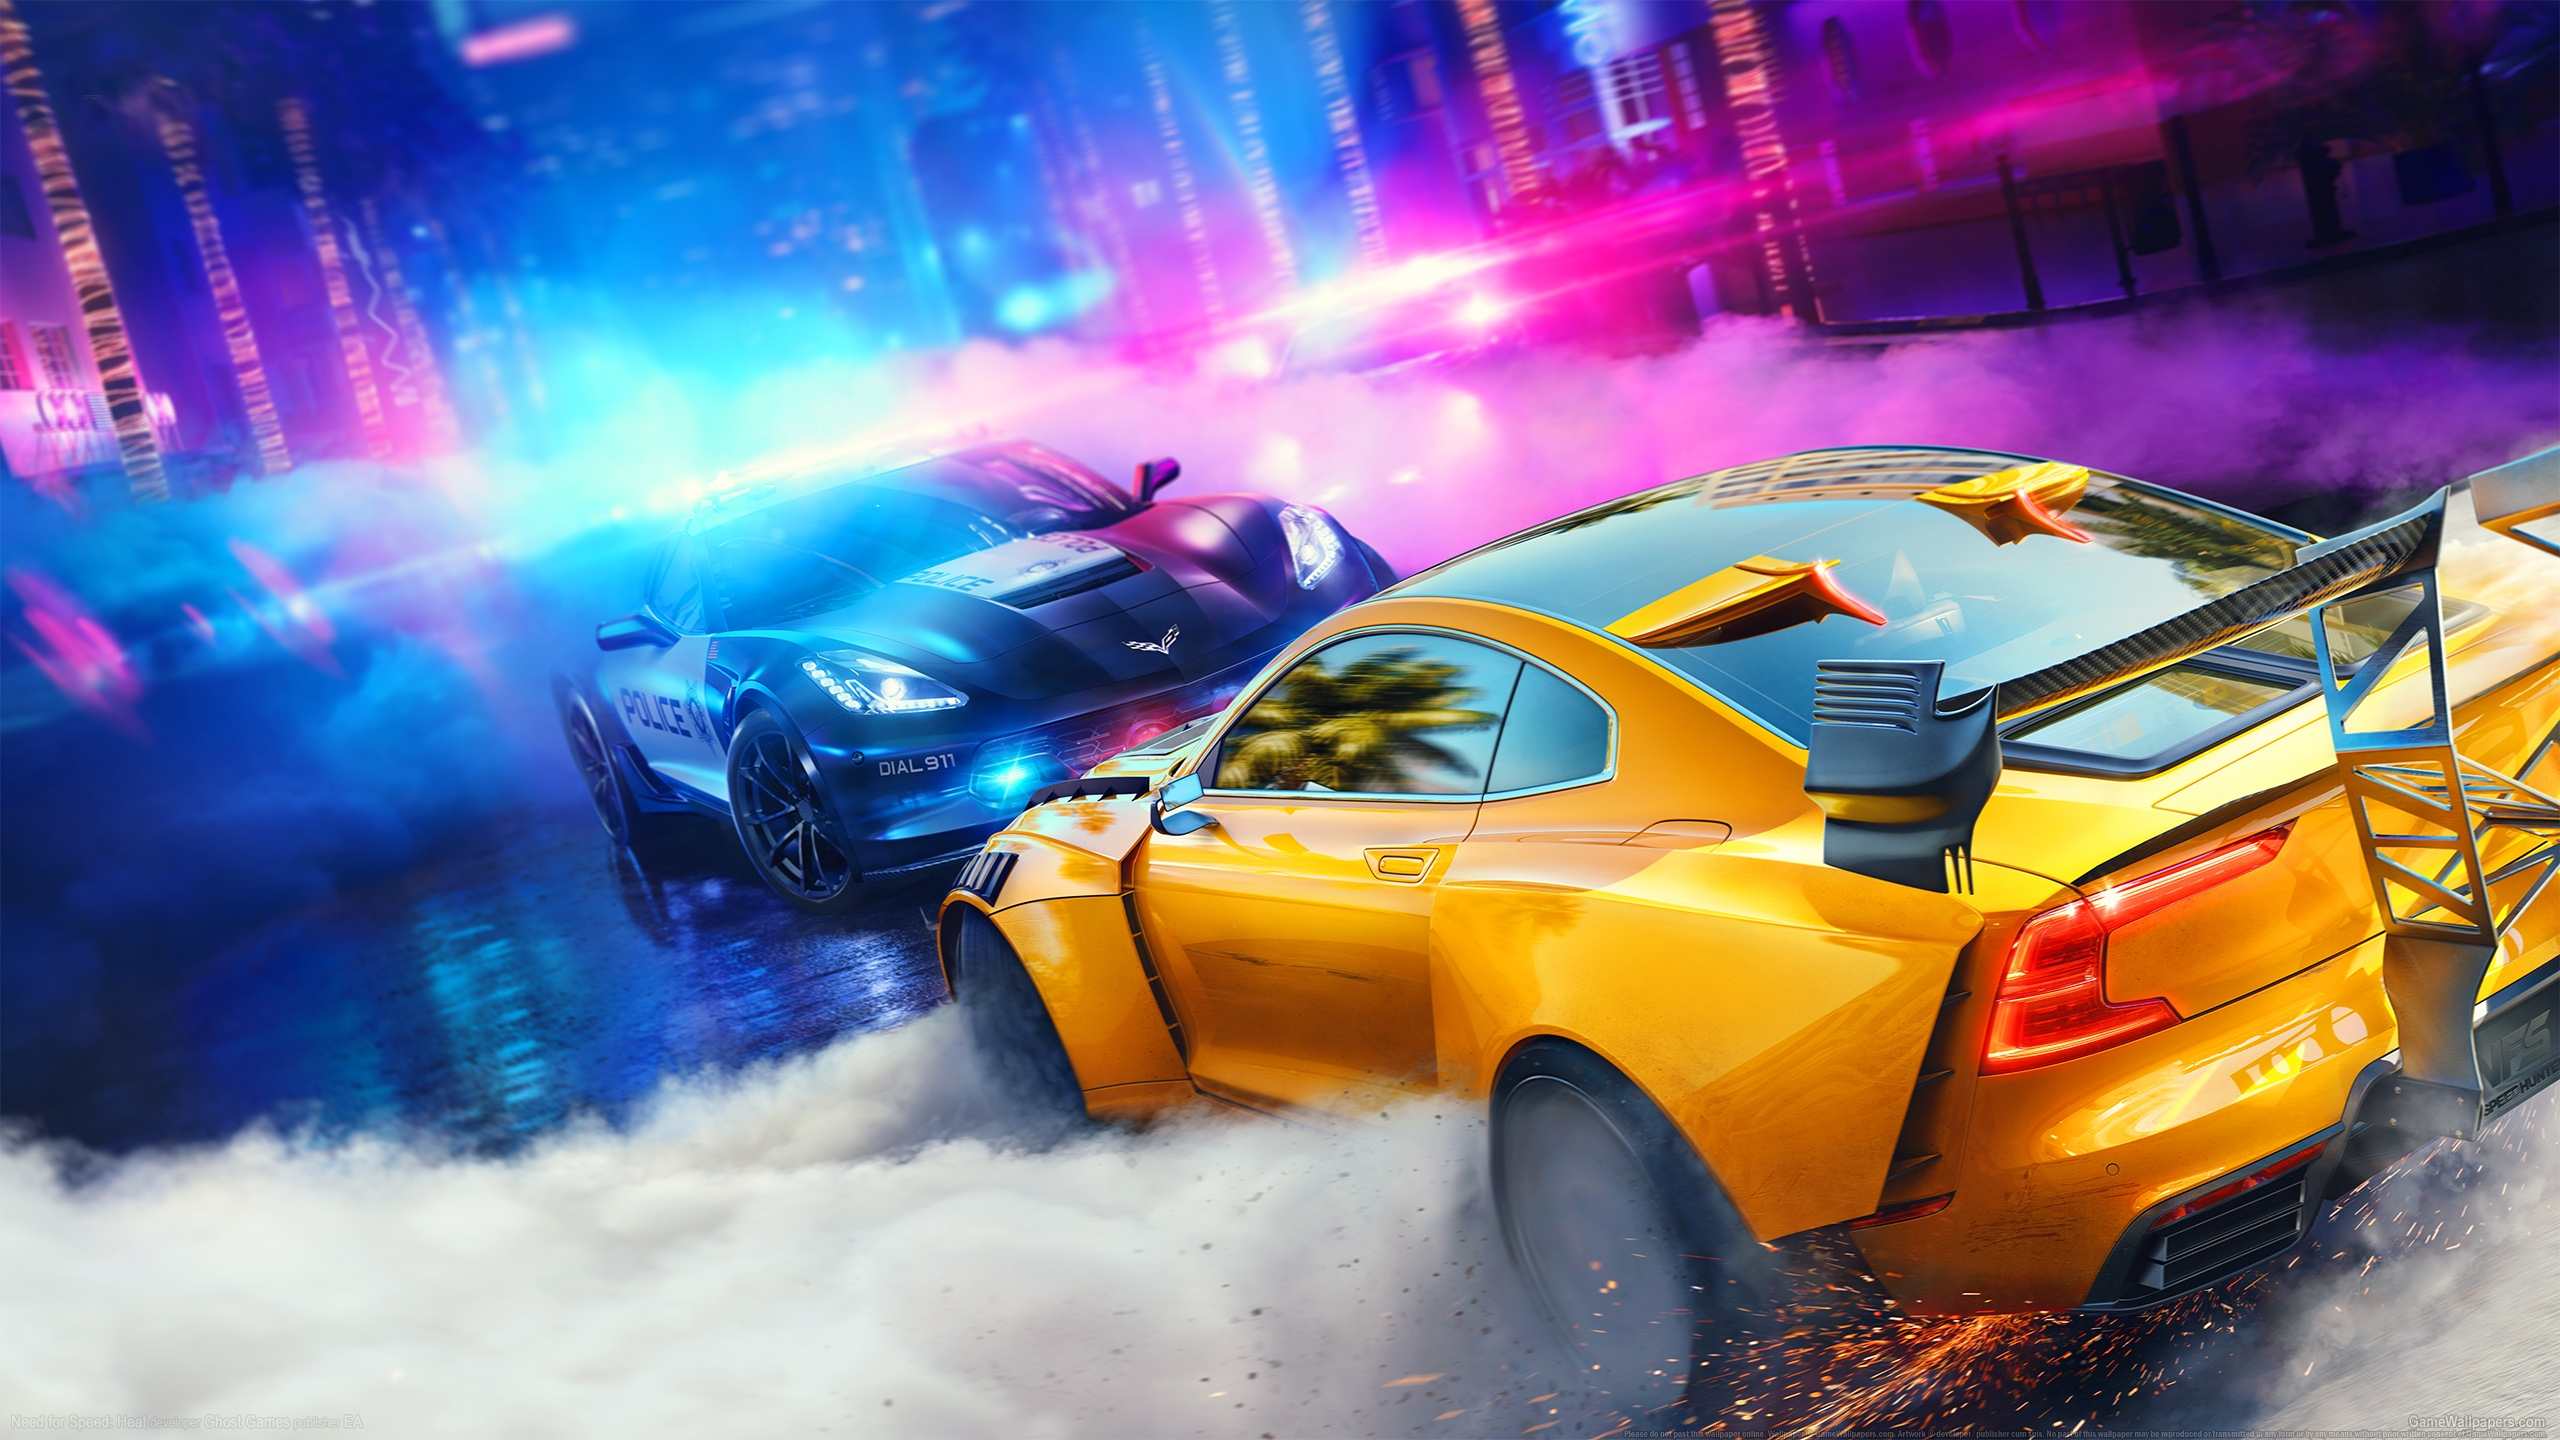 Need for Speed: Heat 2560x1440 wallpaper or background 01